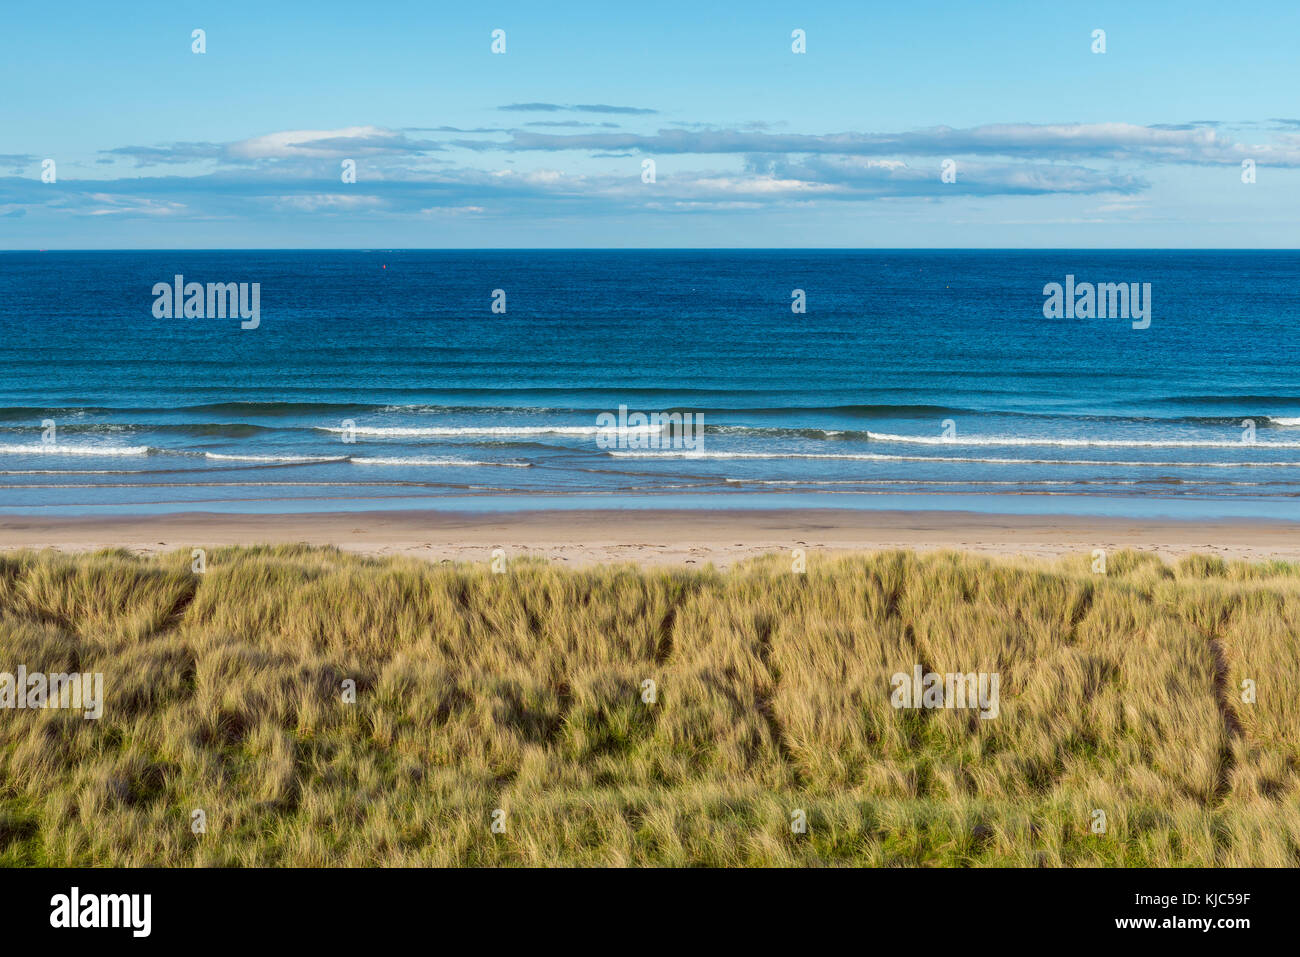 Grassy sand dunes and beach along the shores of Seahouses on the North Sea in Northumberland, England, United Kingdom - Stock Image